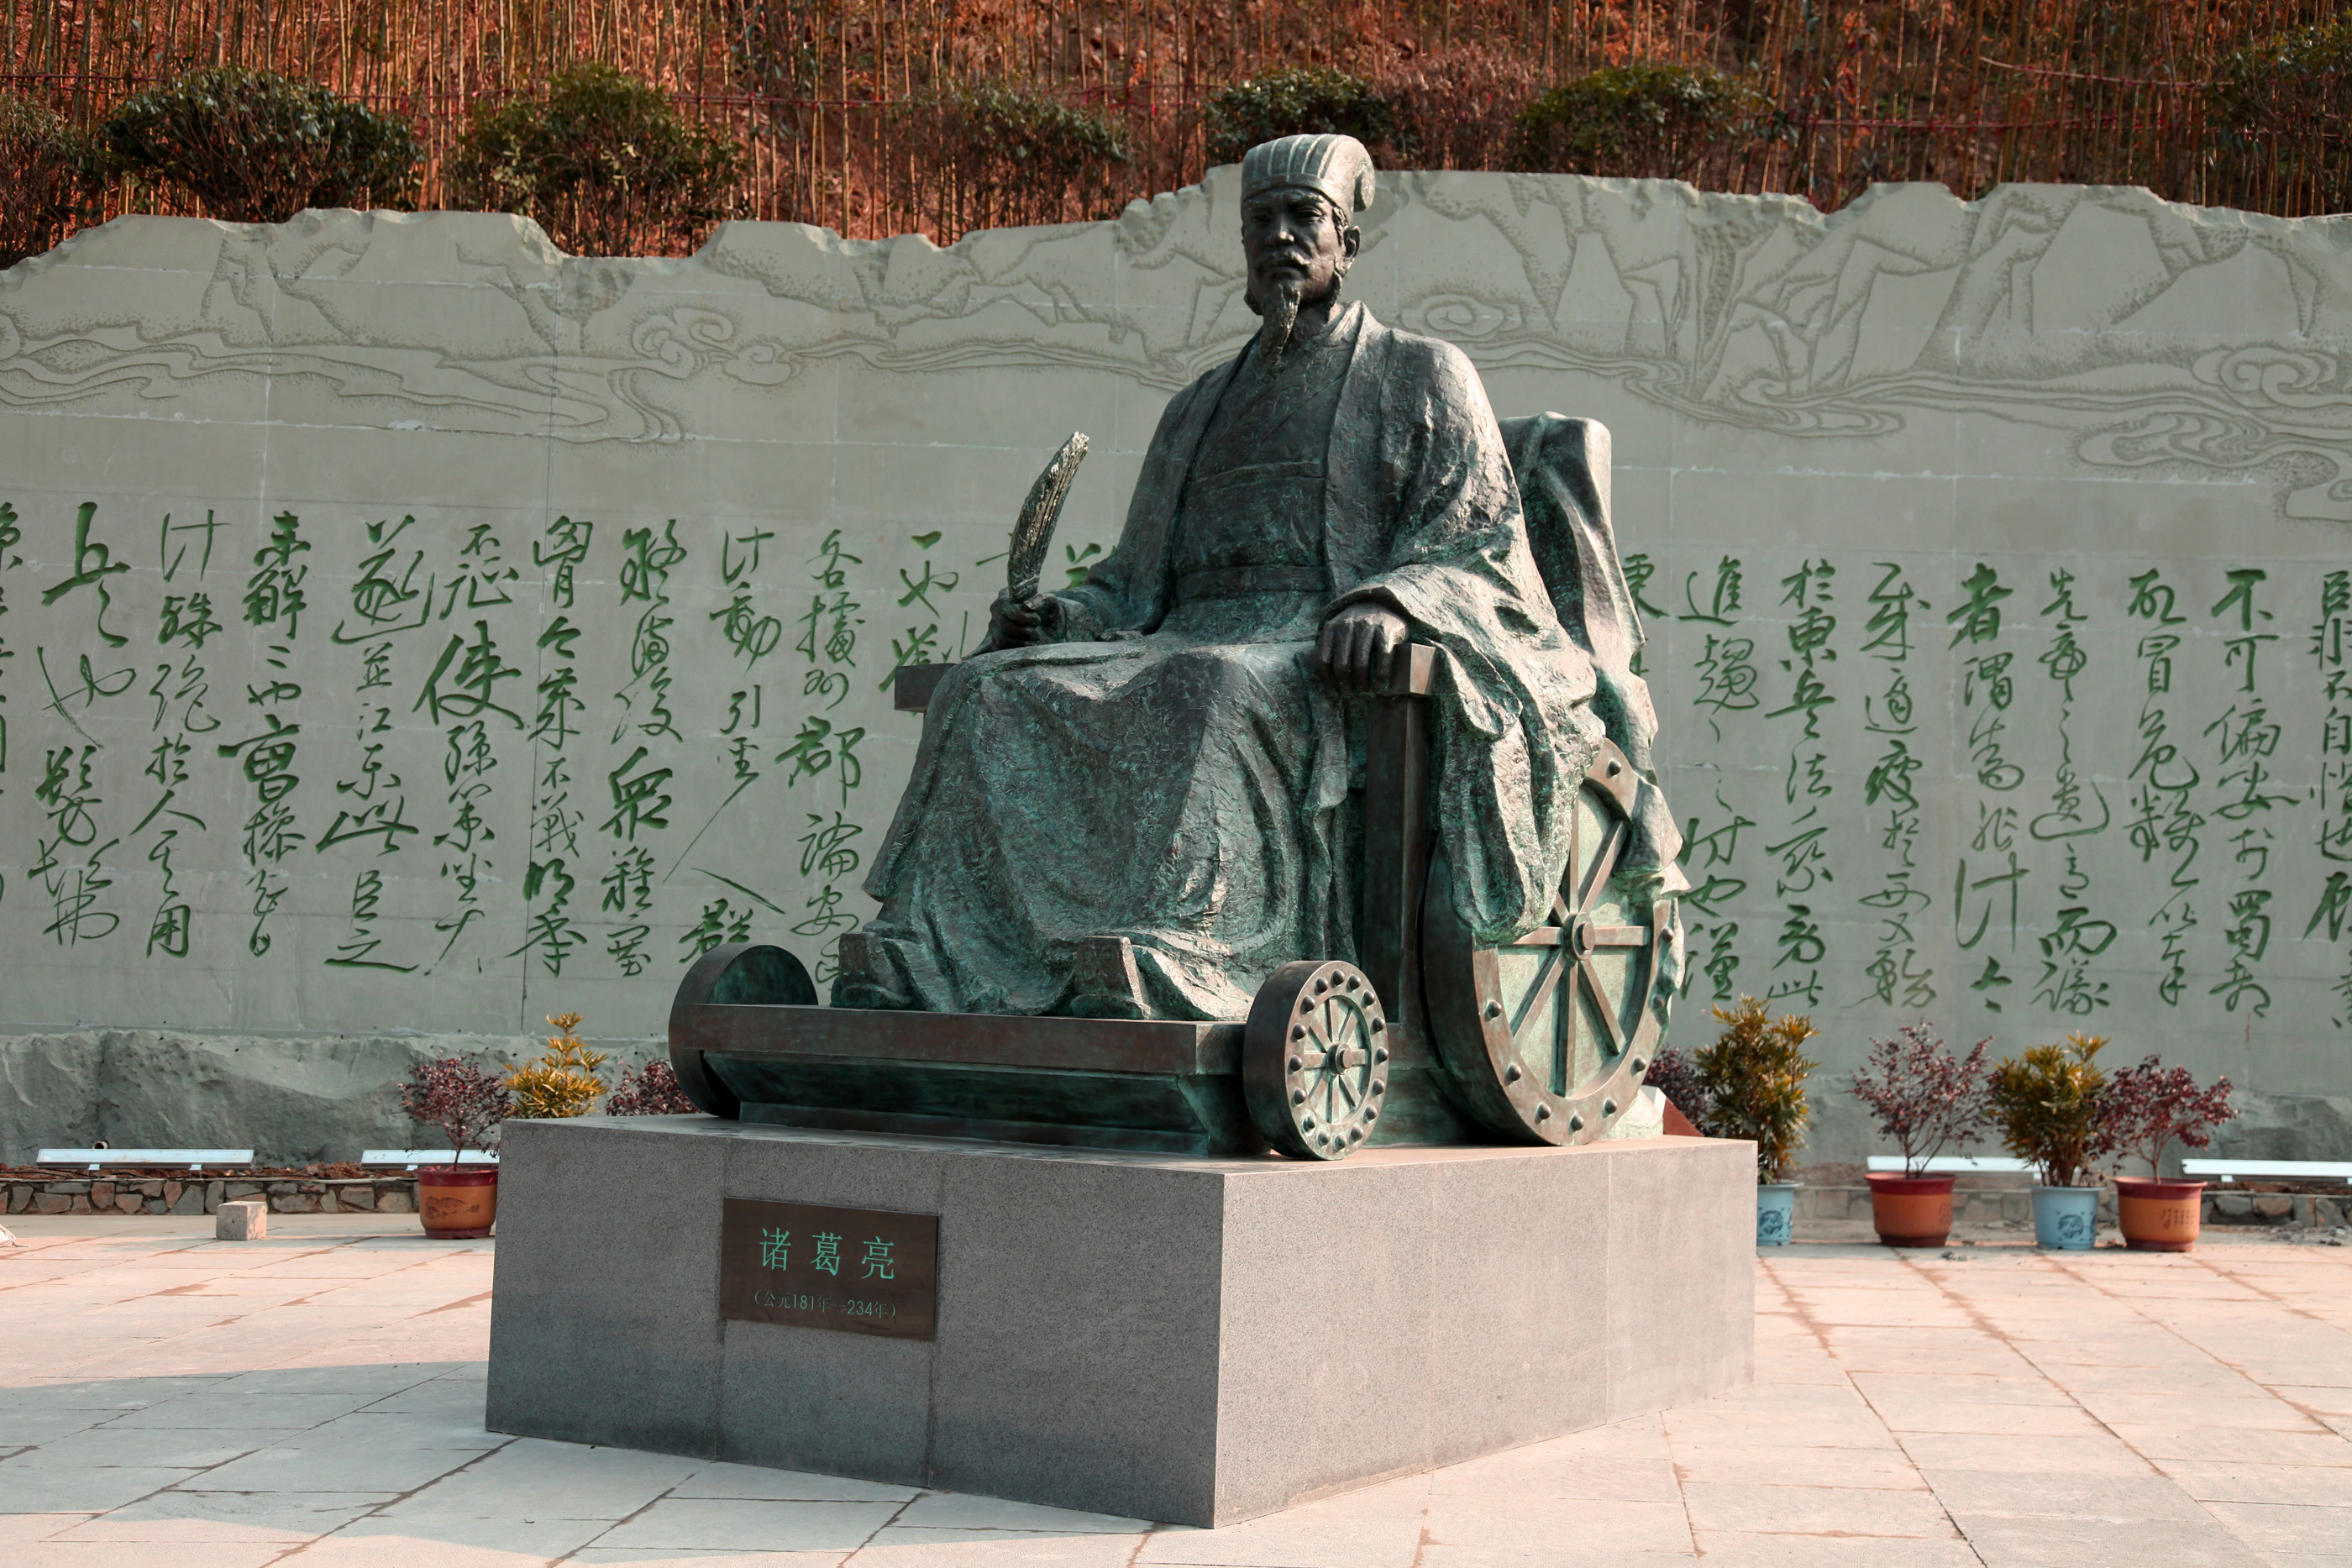 秋风五丈原—中国三国时代的蜀国丞相诸葛亮 像  Zhuge Liang–Prime Minister of the Kingdom of Shu in the Period of the Three Kingdoms